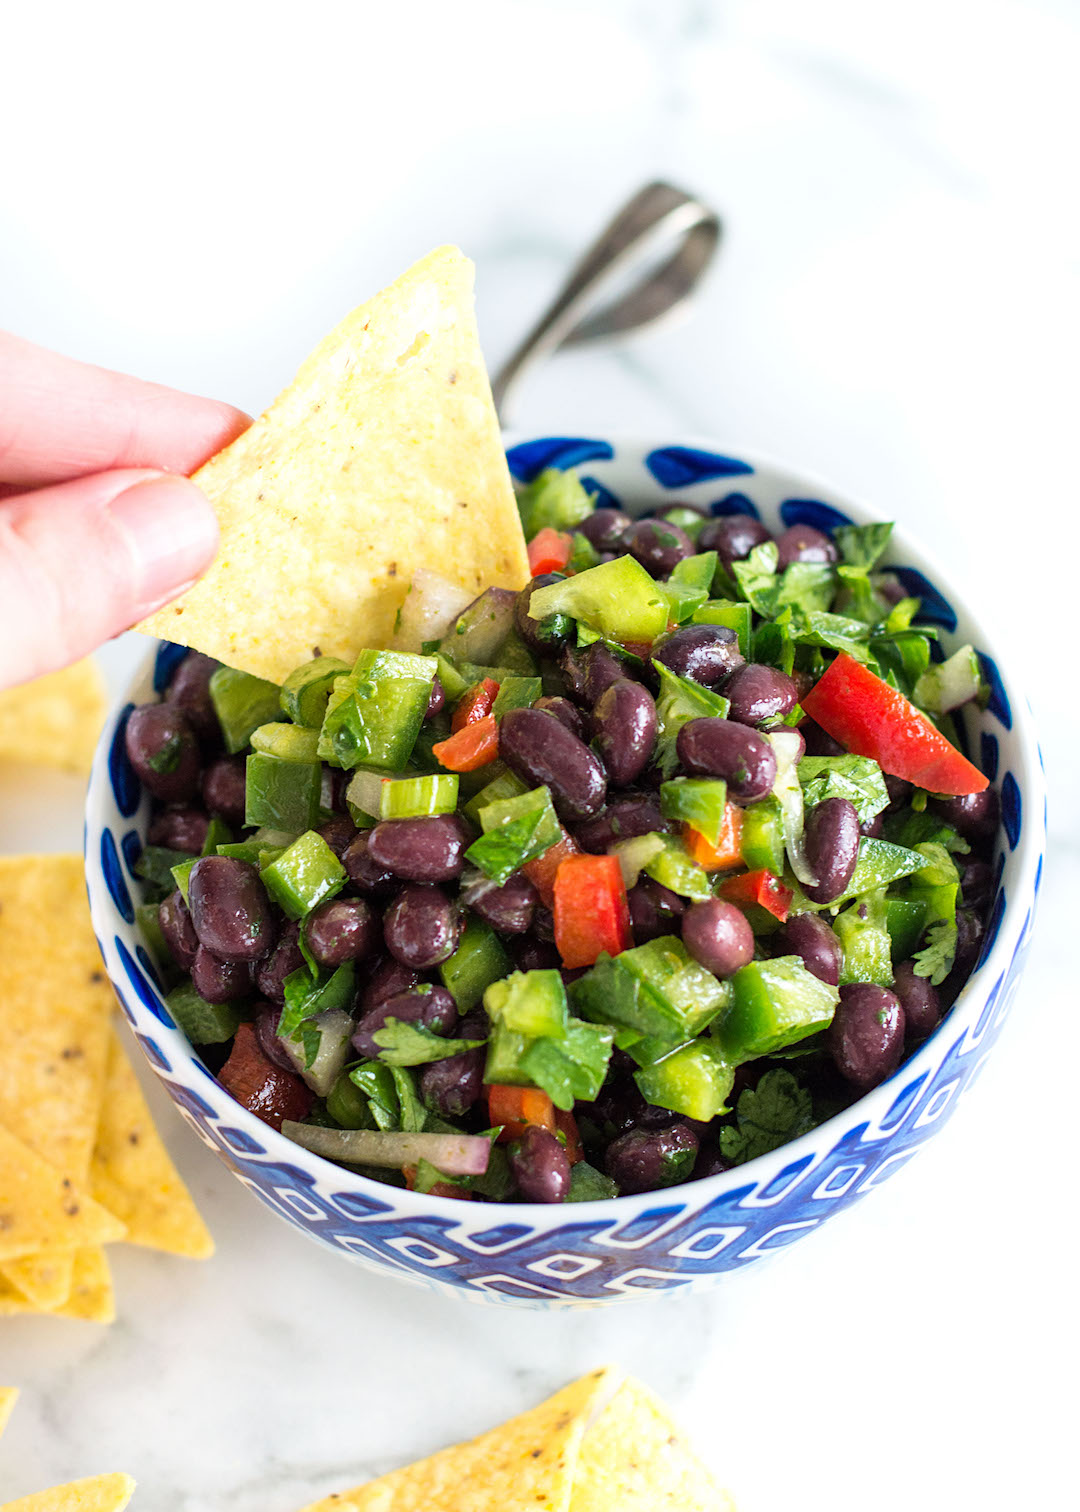 Healthy Black Bean Salsa Dip | gluten free, vegan, easy to make | healthy snack recipe |